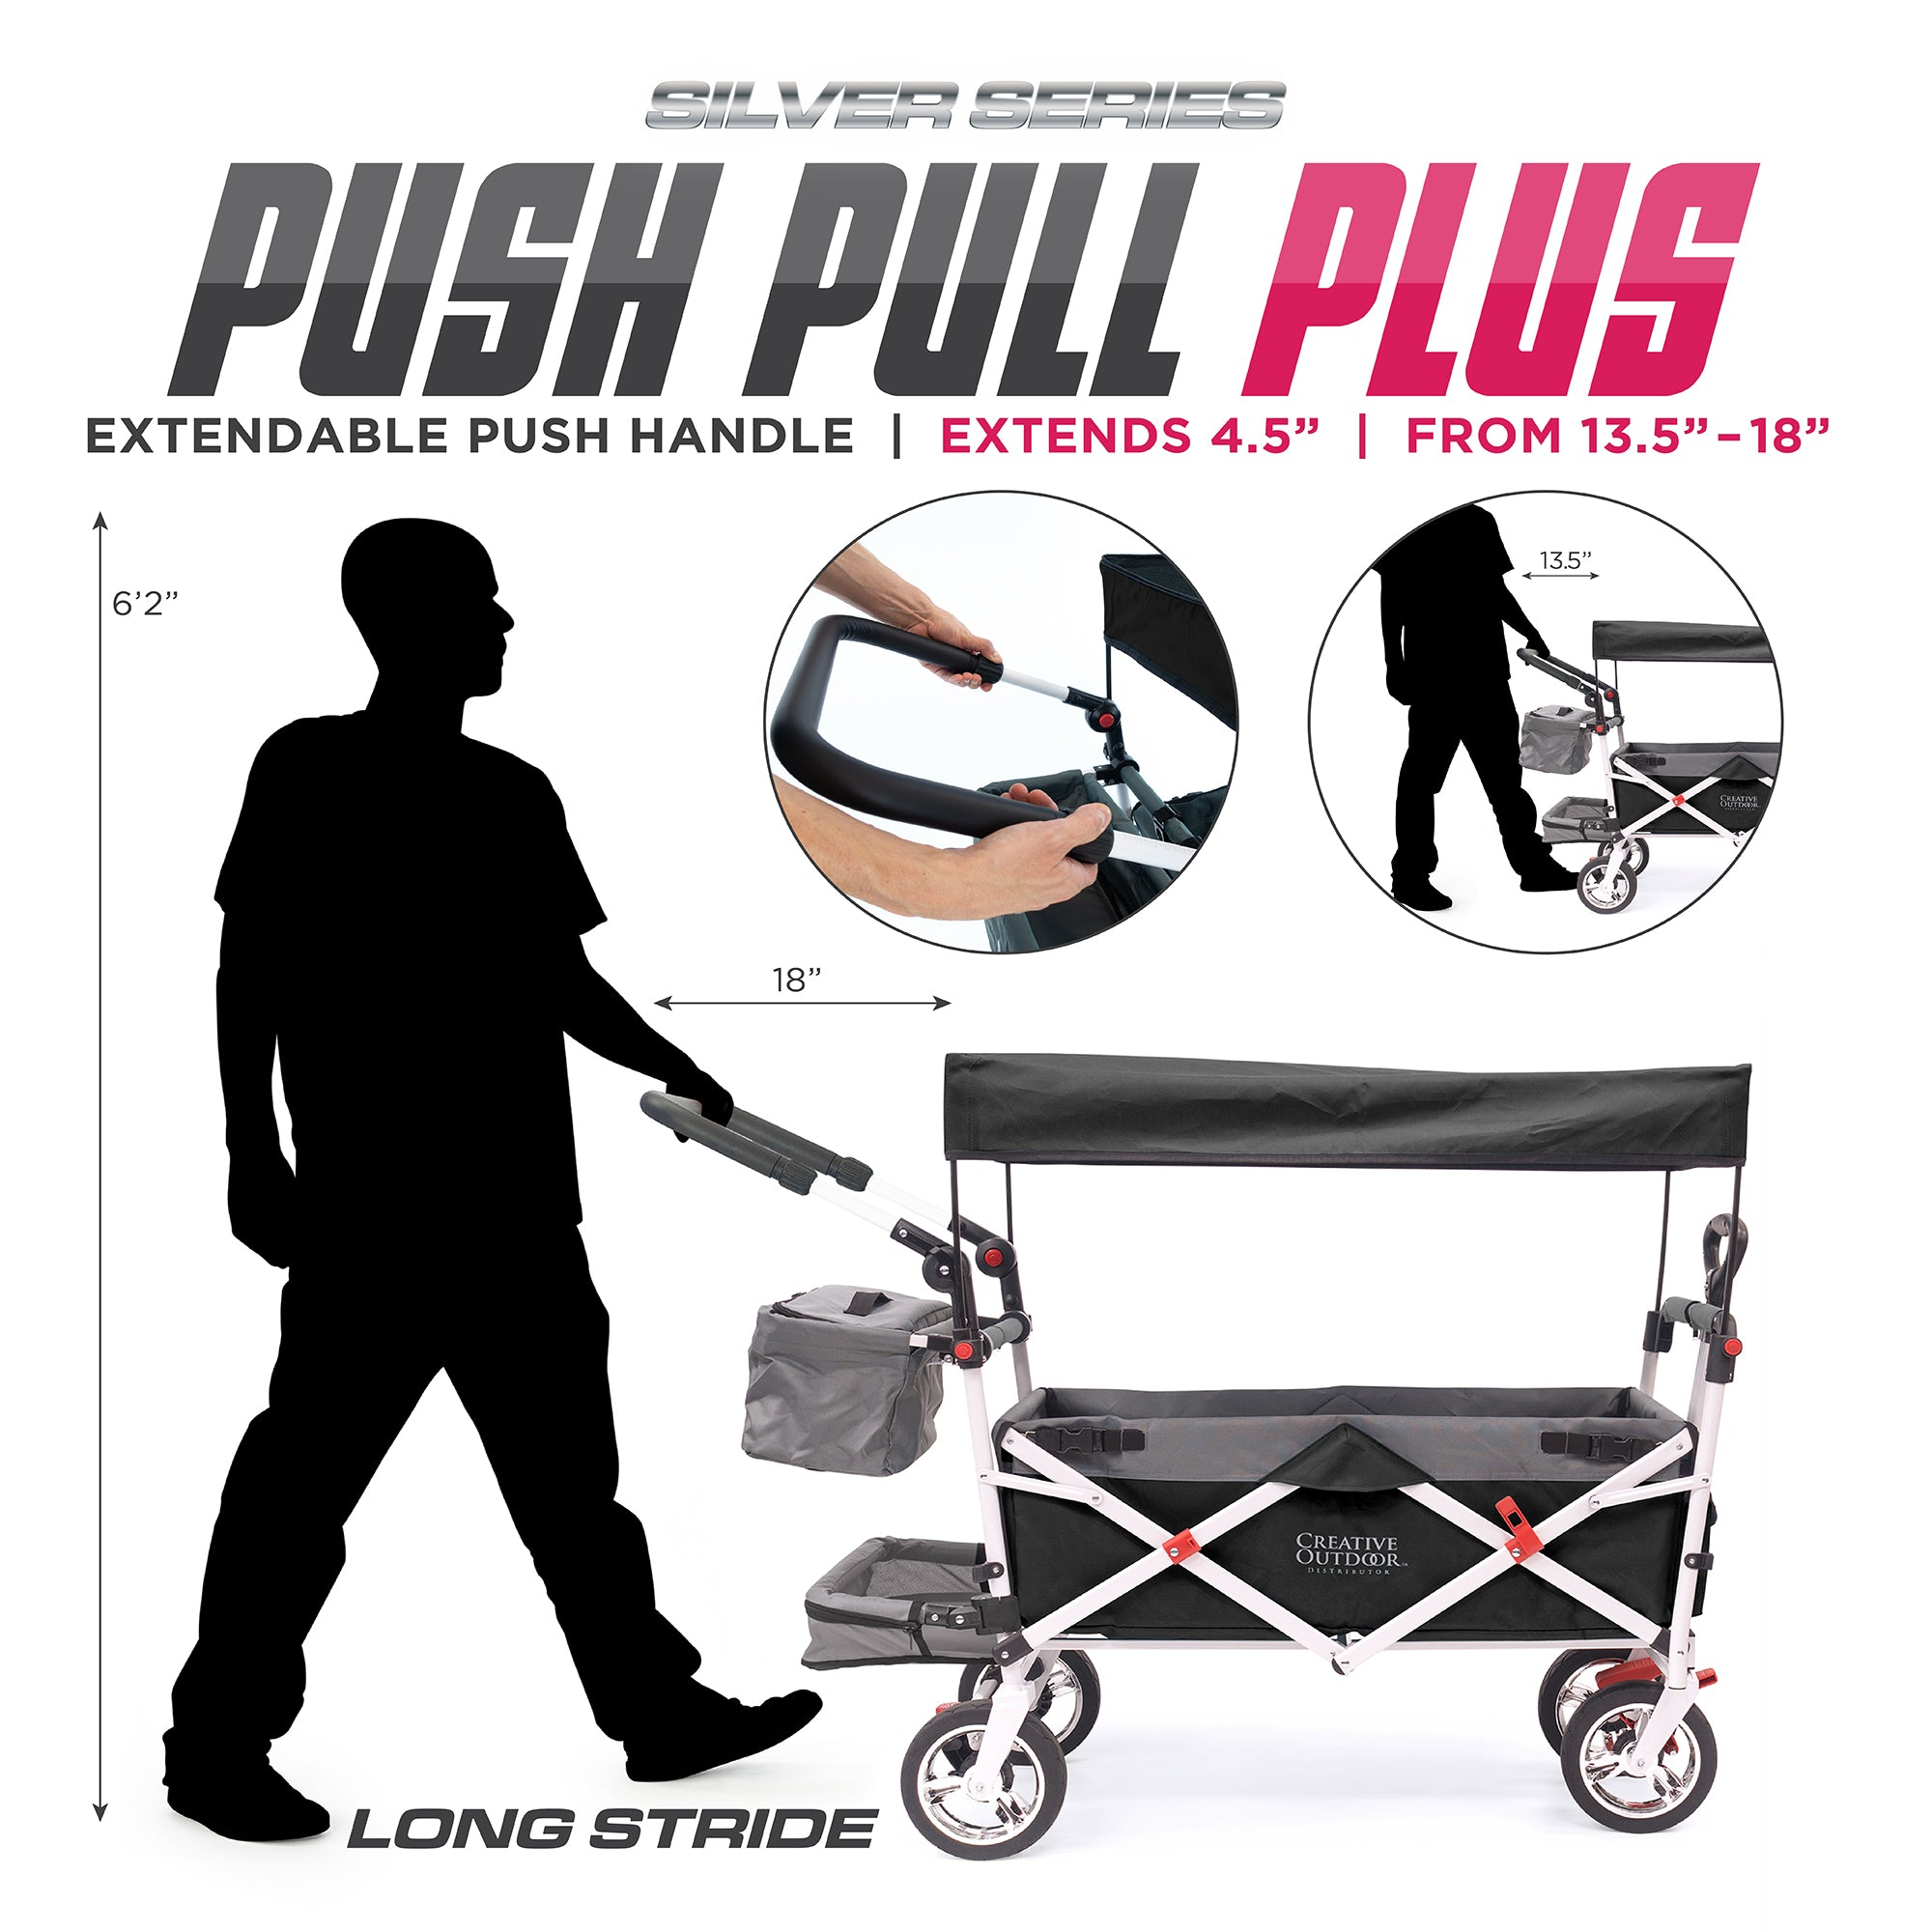 Silver Series Push Pull Folding Stroller Wagon Dimensions  Plus Extendable Handle